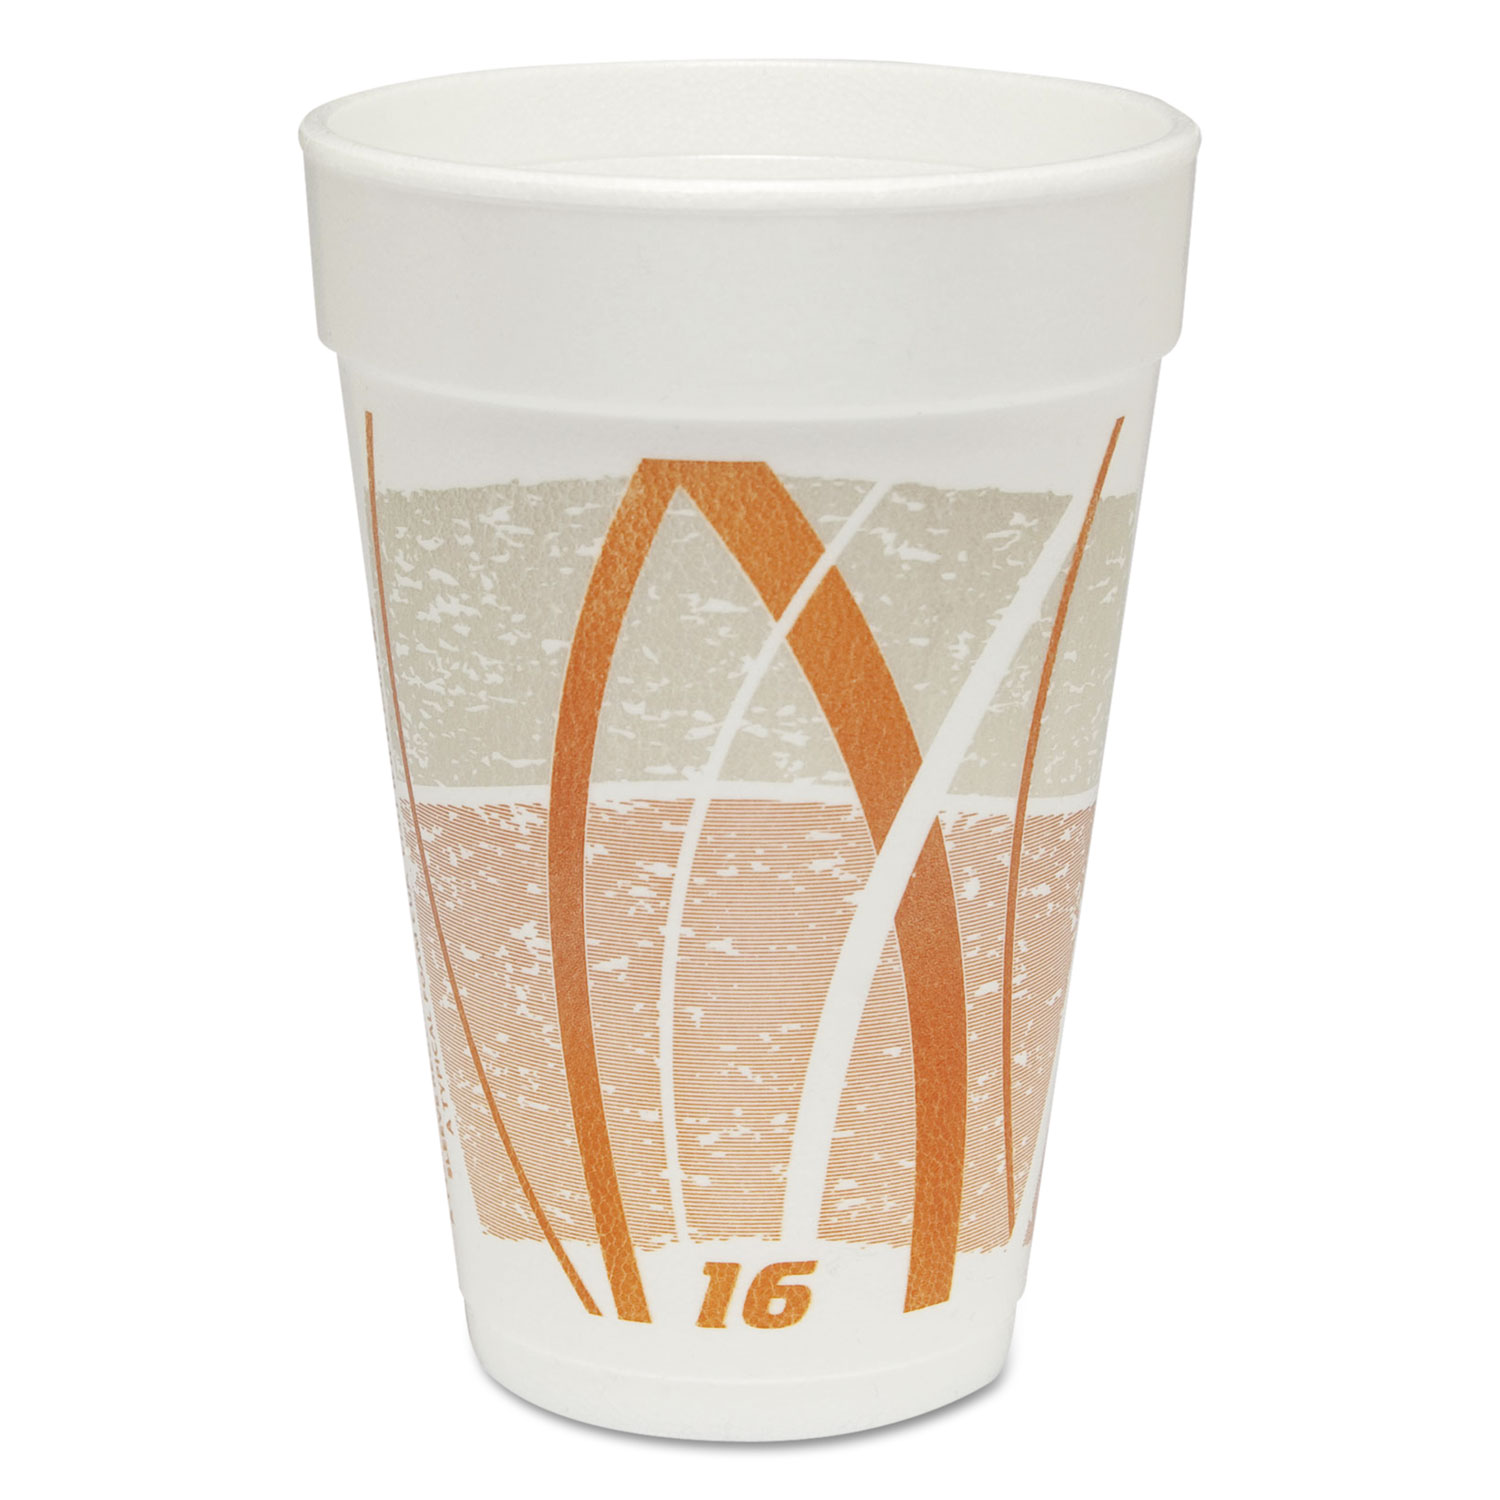 Impulse Hot/Cold Foam Drinking Cup, 16oz, Flush Fill, Orange/Gray, 25/BG, 40/CT